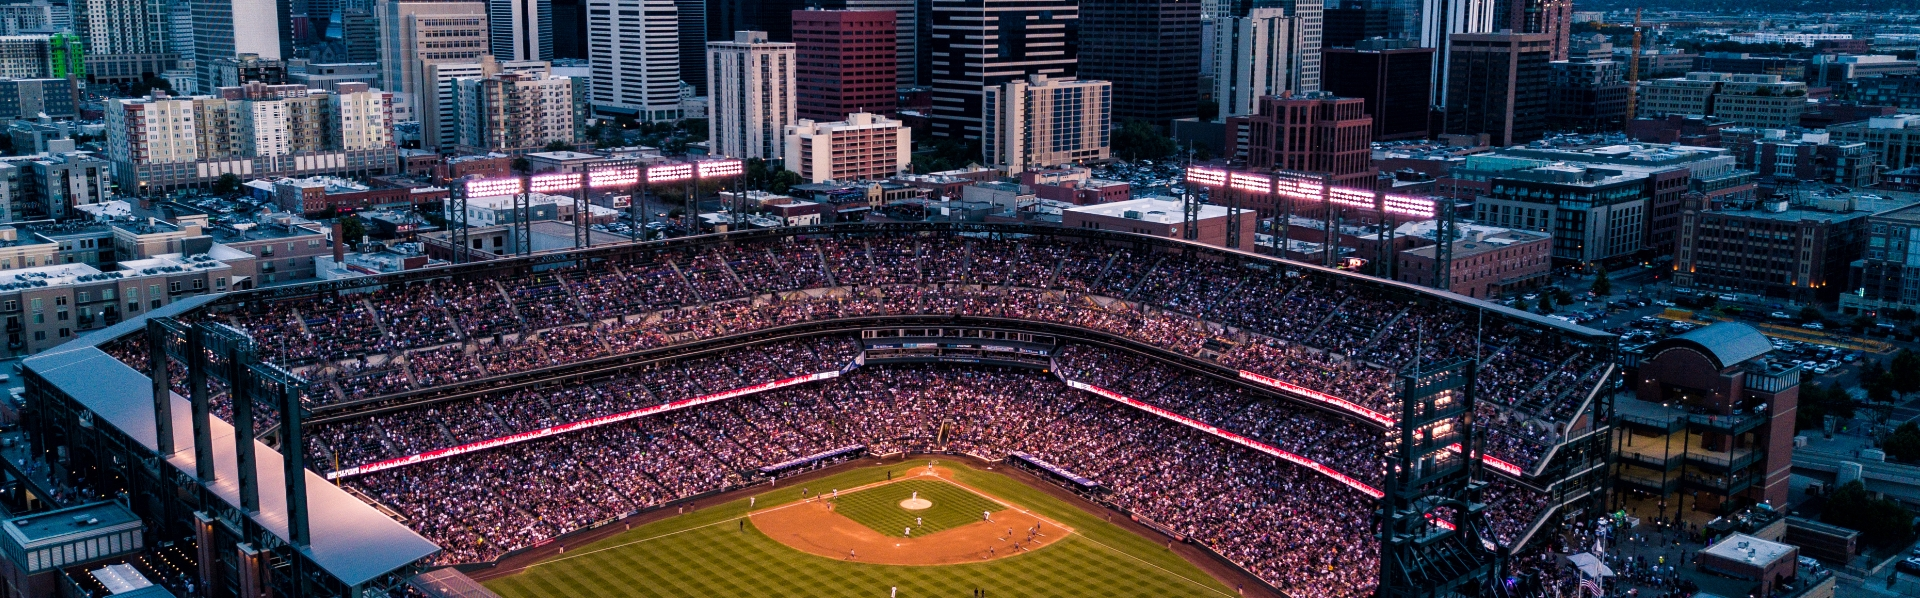 drone countermeasures for stadiums and arenas